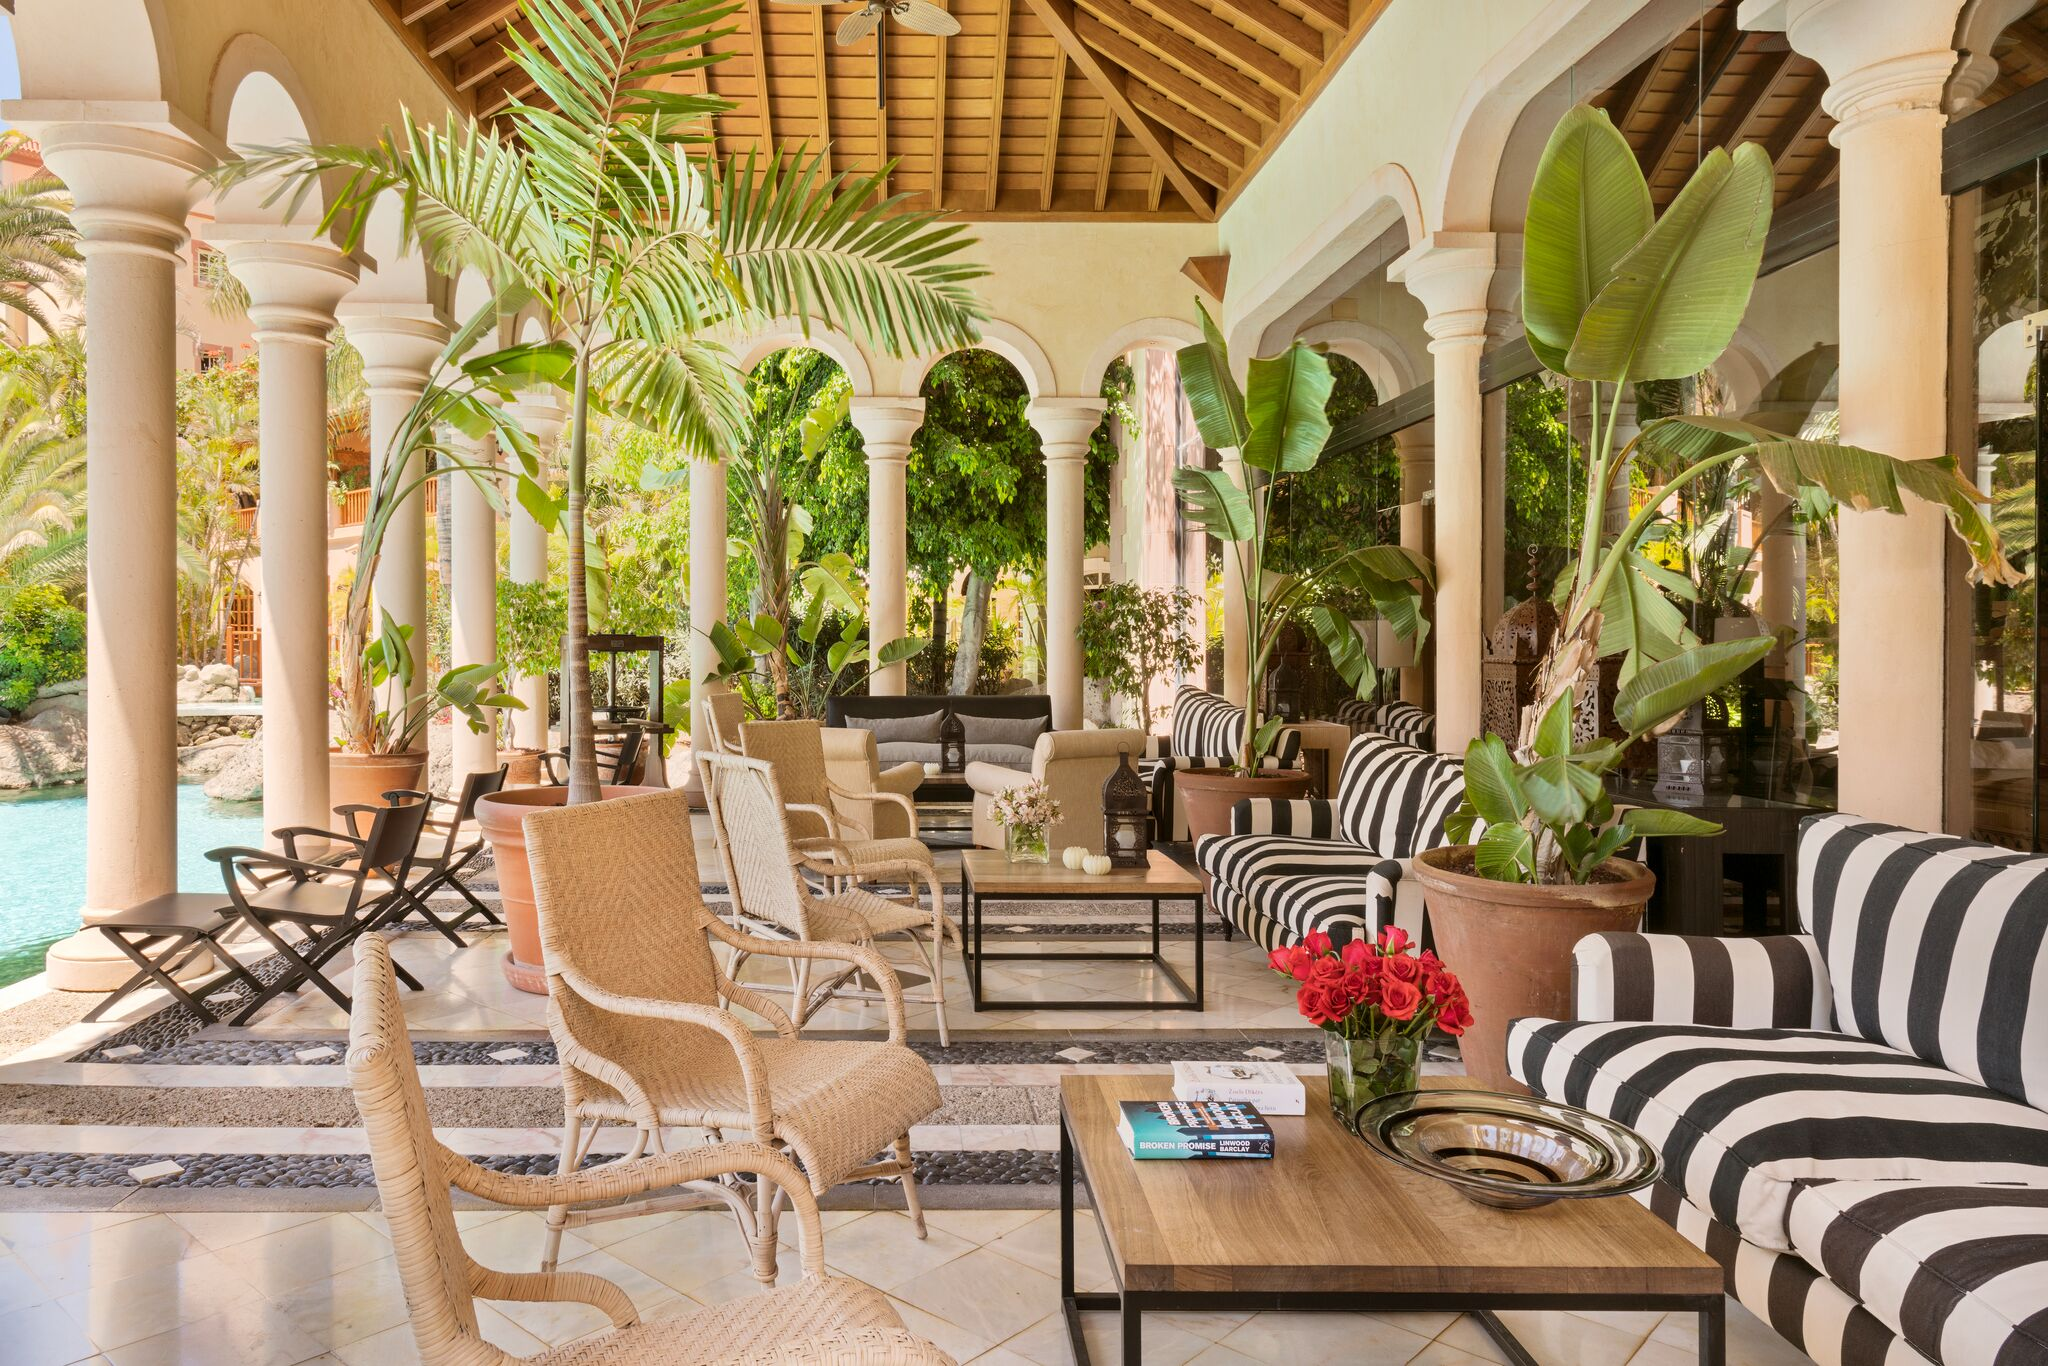 Bahía-del-Duque-luxury-resort-hotel